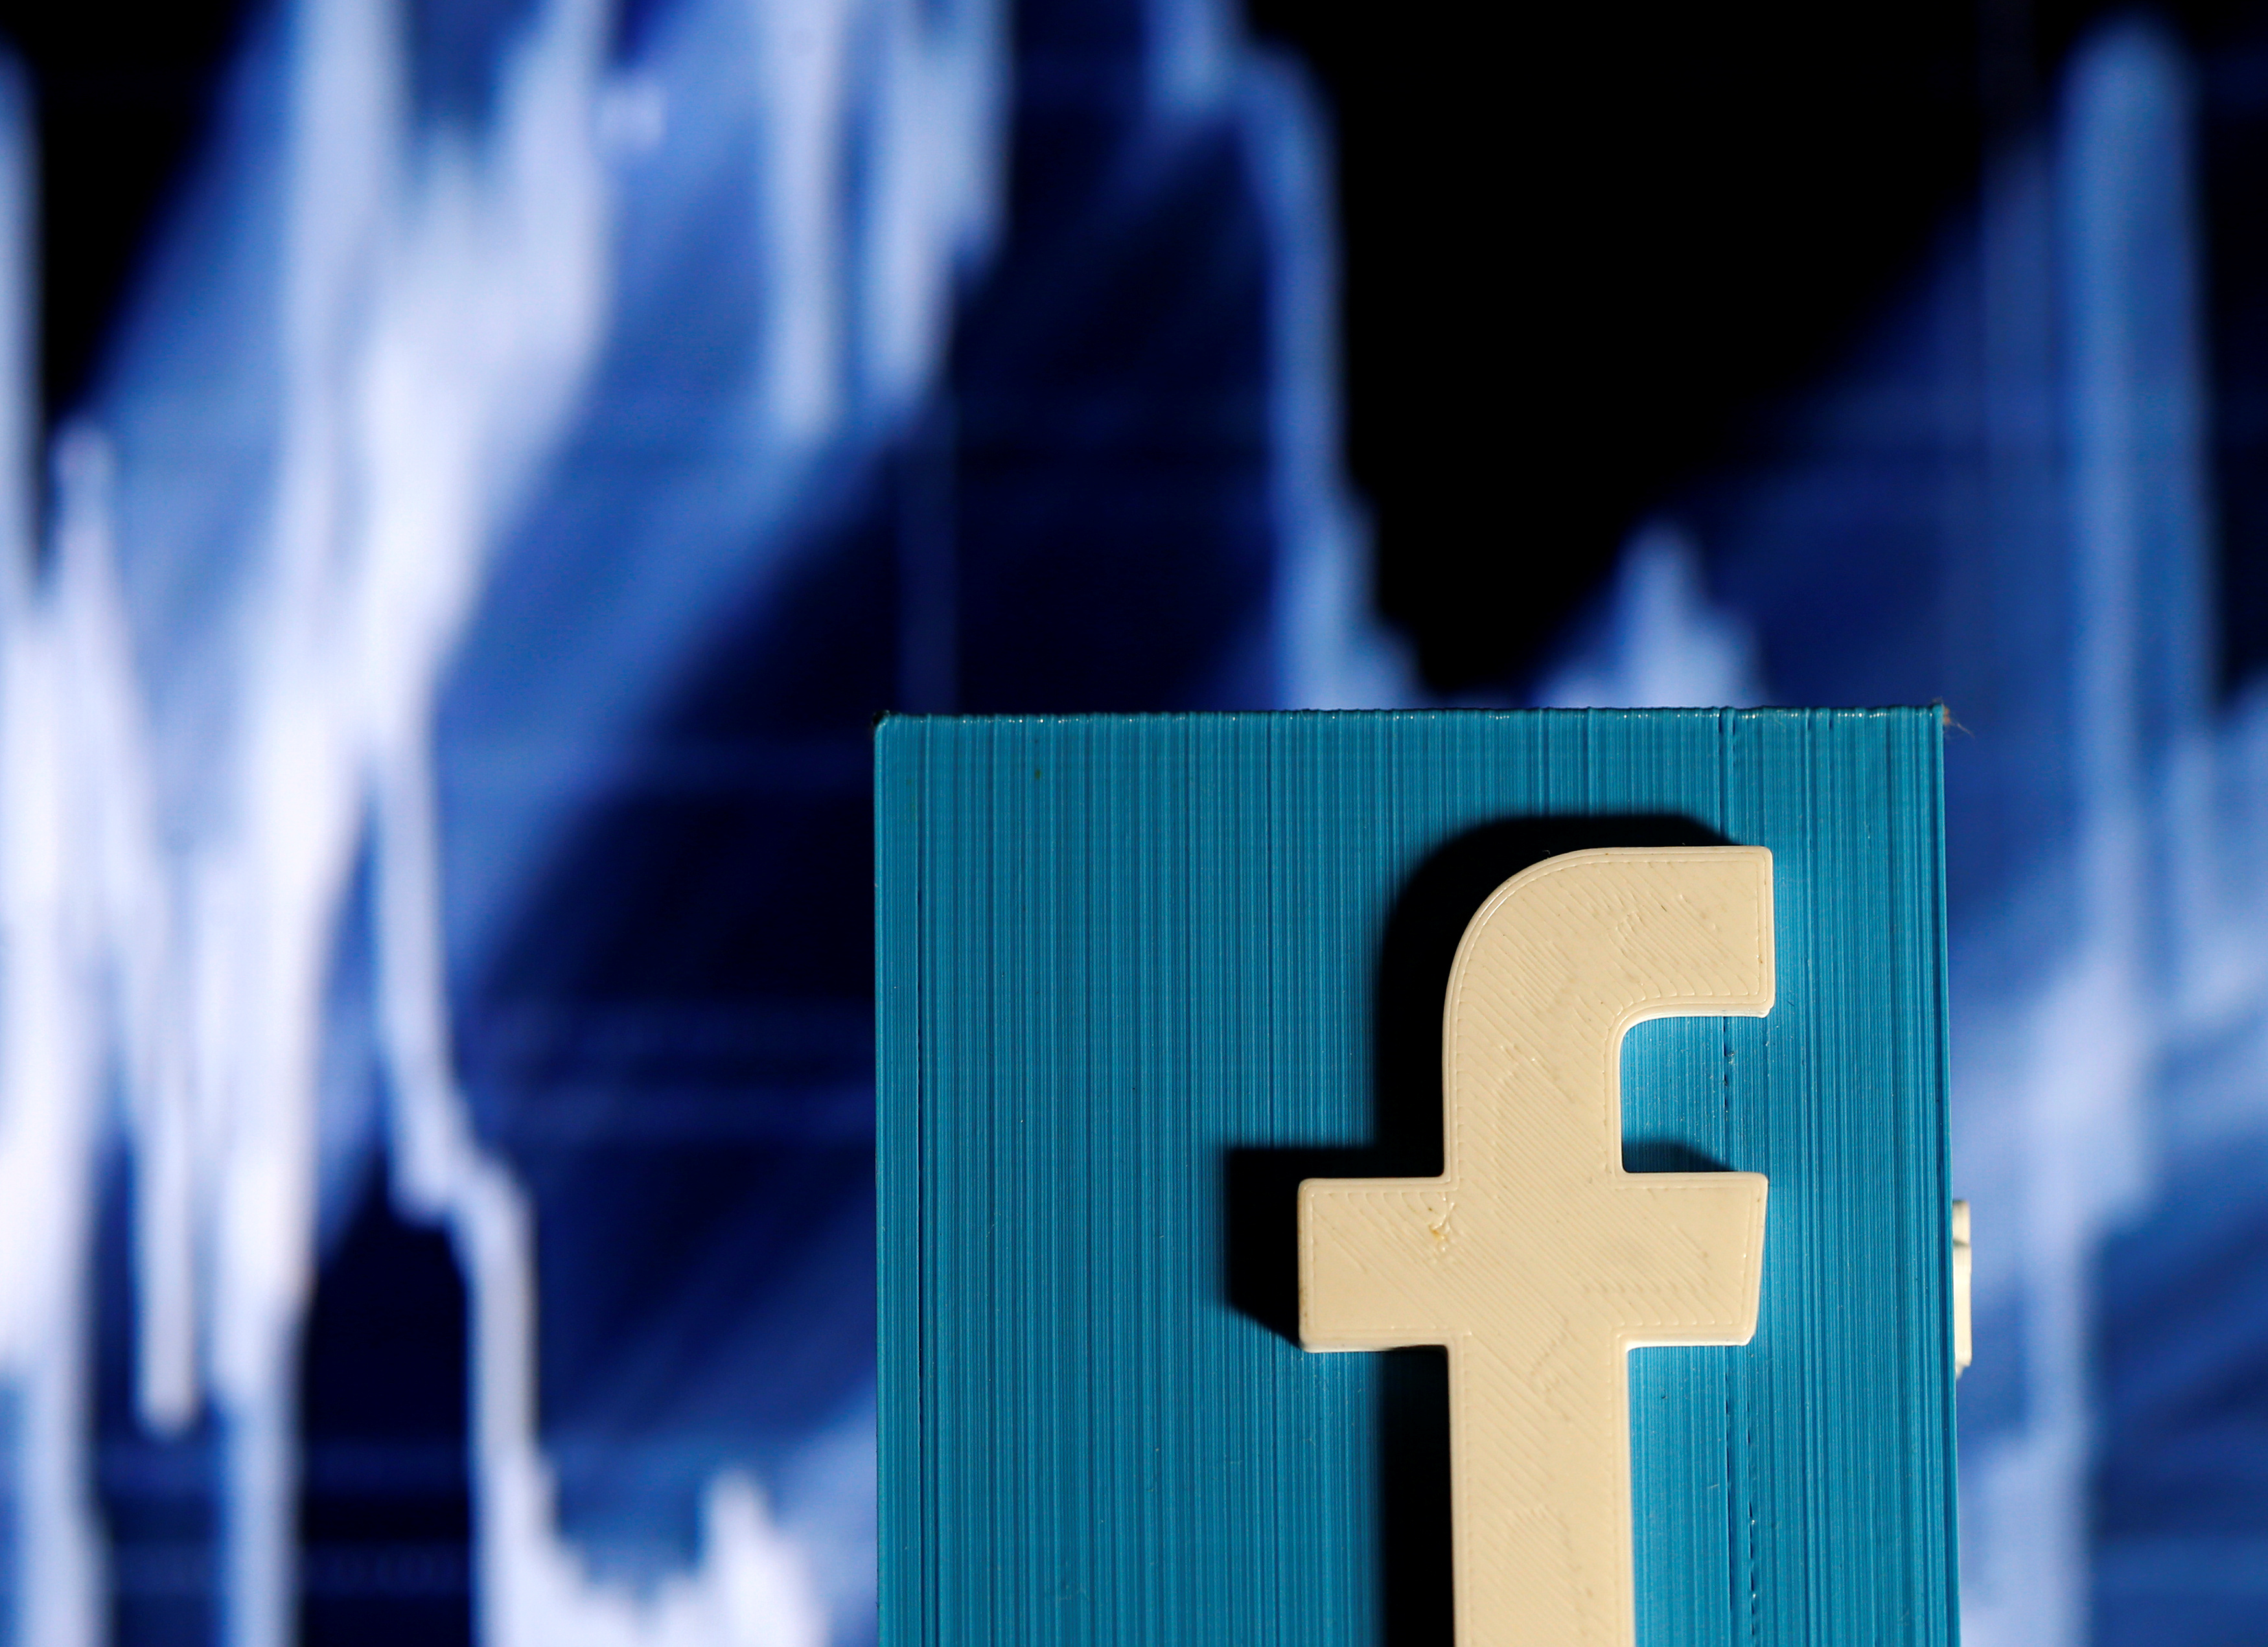 Ahead of 2020, FB ensnared in heated political climate - 47abc